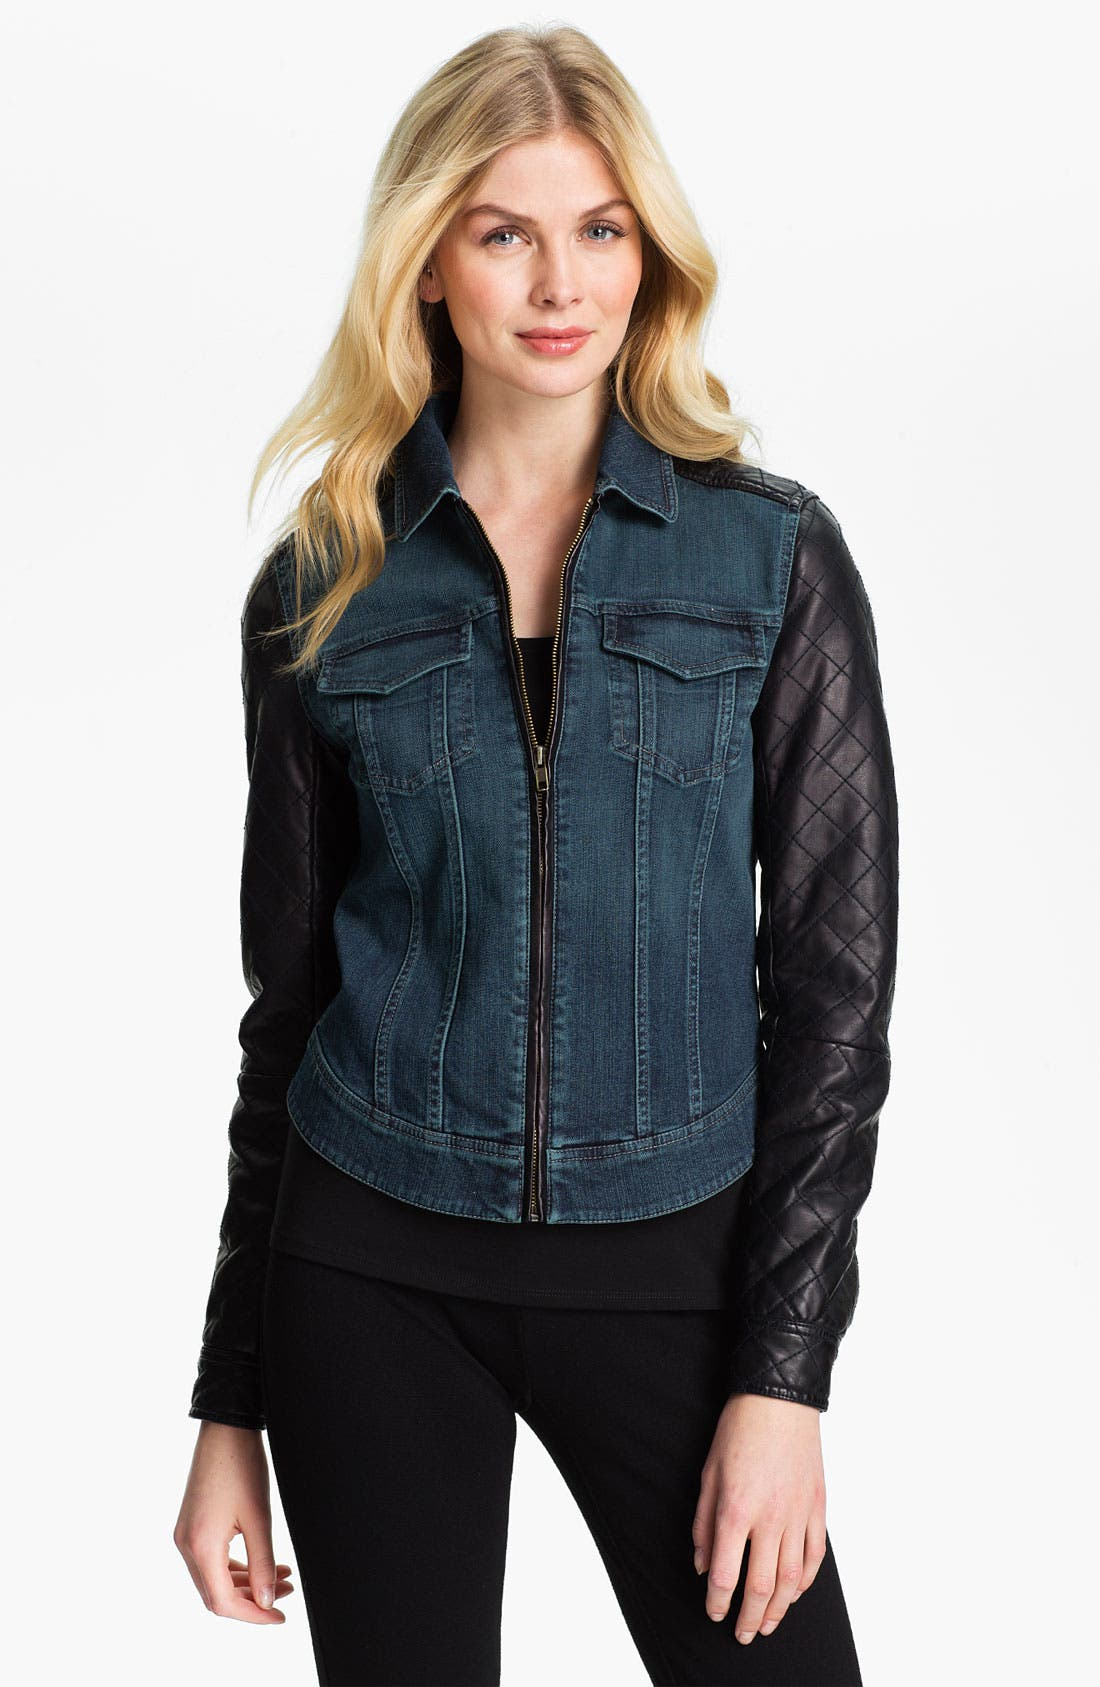 Main Image - Isaac Mizrahi Jeans 'Kimberly' Mix Media Jacket (Online Exclusive)